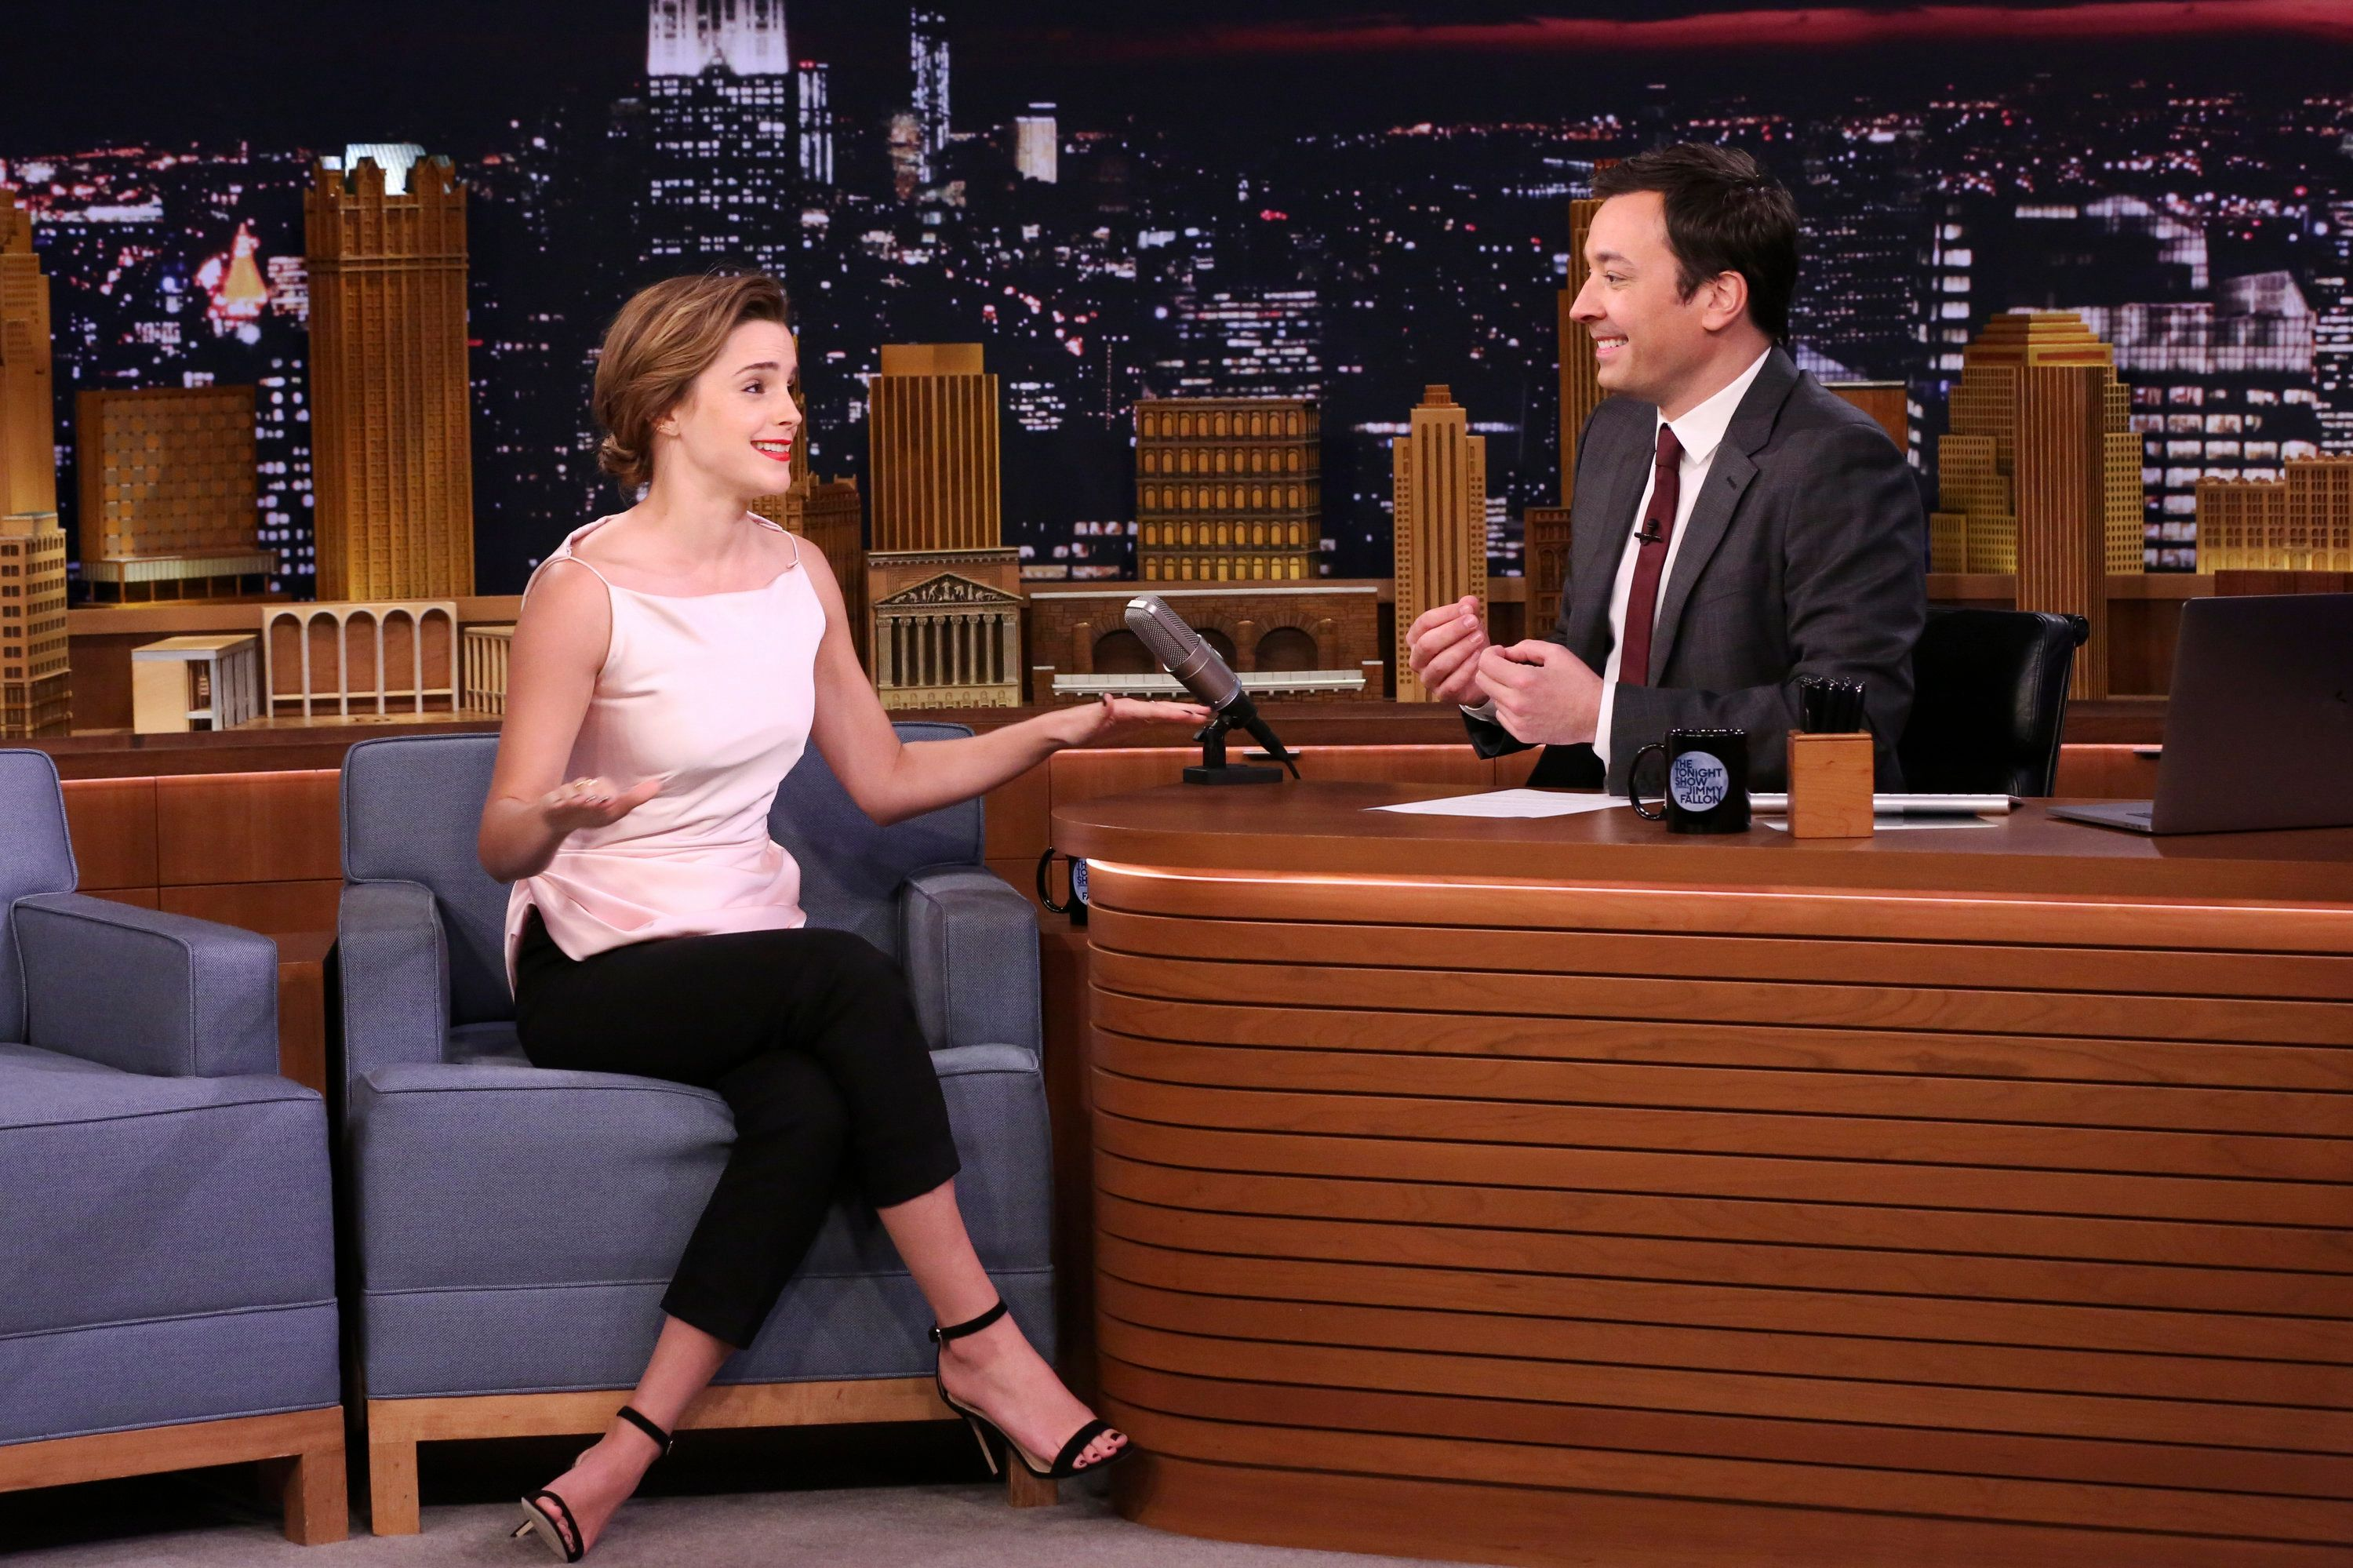 THE TONIGHT SHOW STARRING JIMMY FALLON -- Episode 0663 -- Pictured: (l-r) Actress Emma Watson during an interview with host Jimmy Fallon on April 27, 2017 -- (Photo by: Andrew Lipovsky/NBC/NBCU Photo Bank via Getty Images)